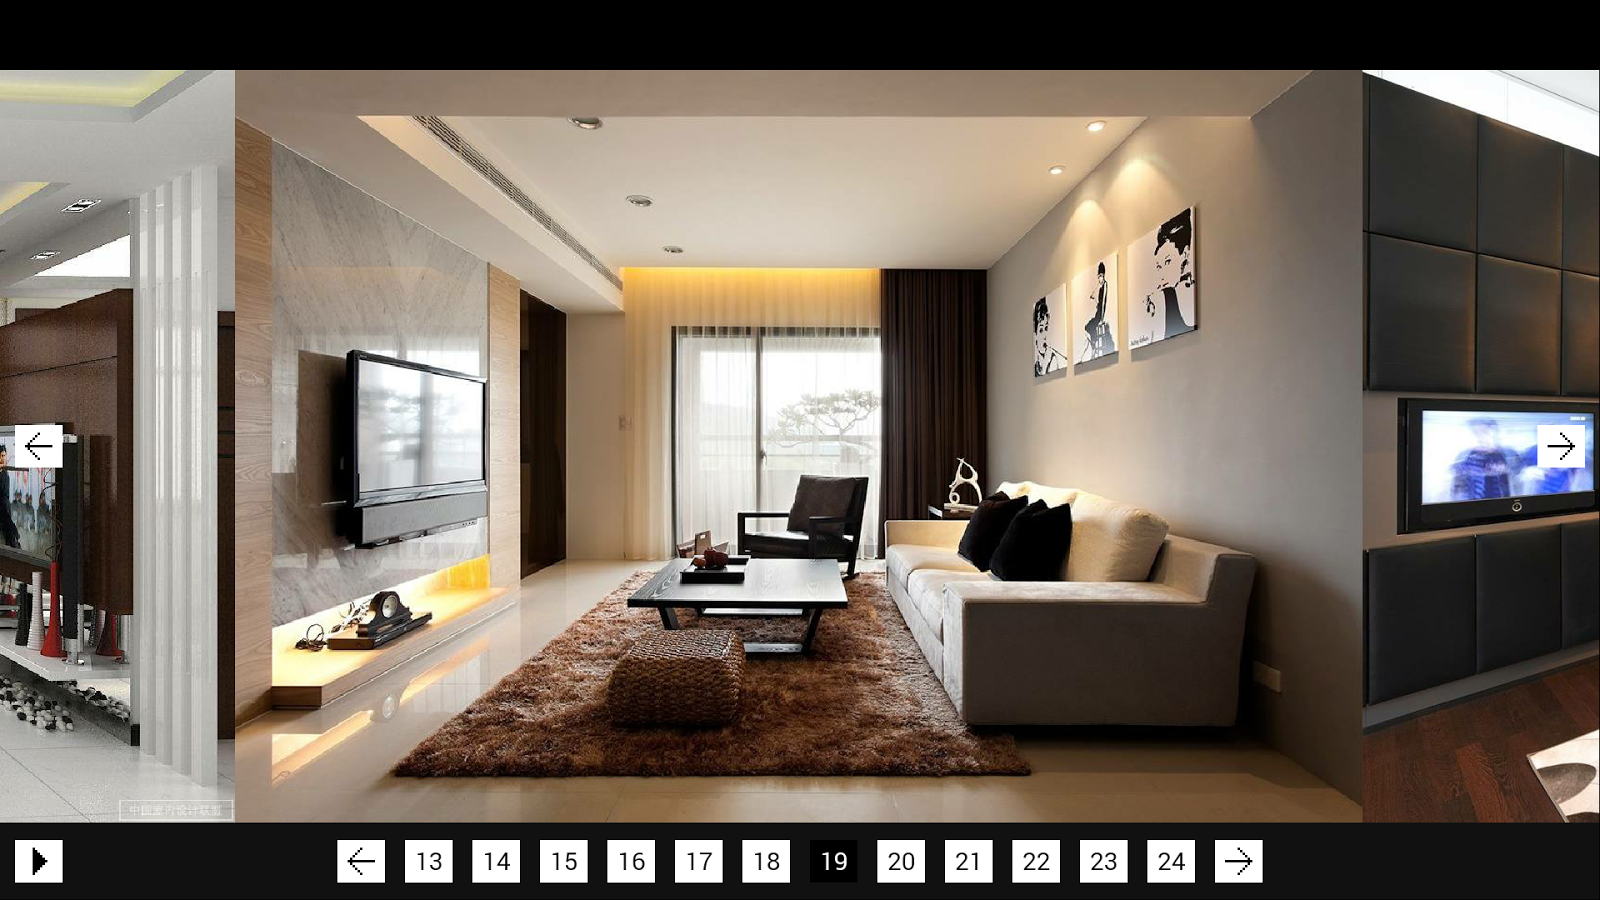 Home interior design android apps on google play for Interior design decoration app